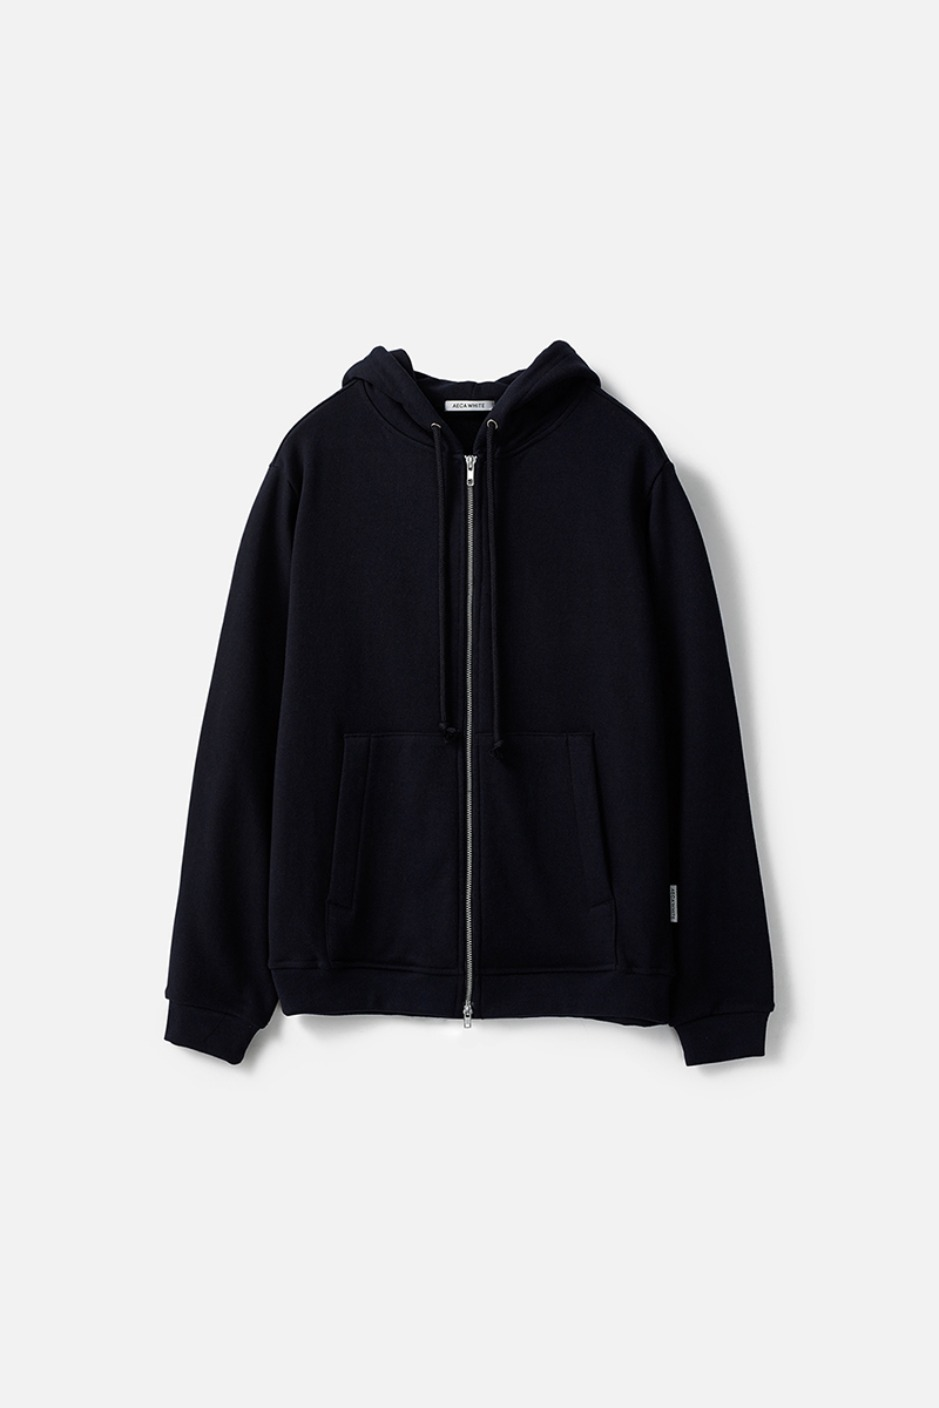 HEAVY WEIGHT ZIP UP HOODIE (Premium BASIC)-NAVY